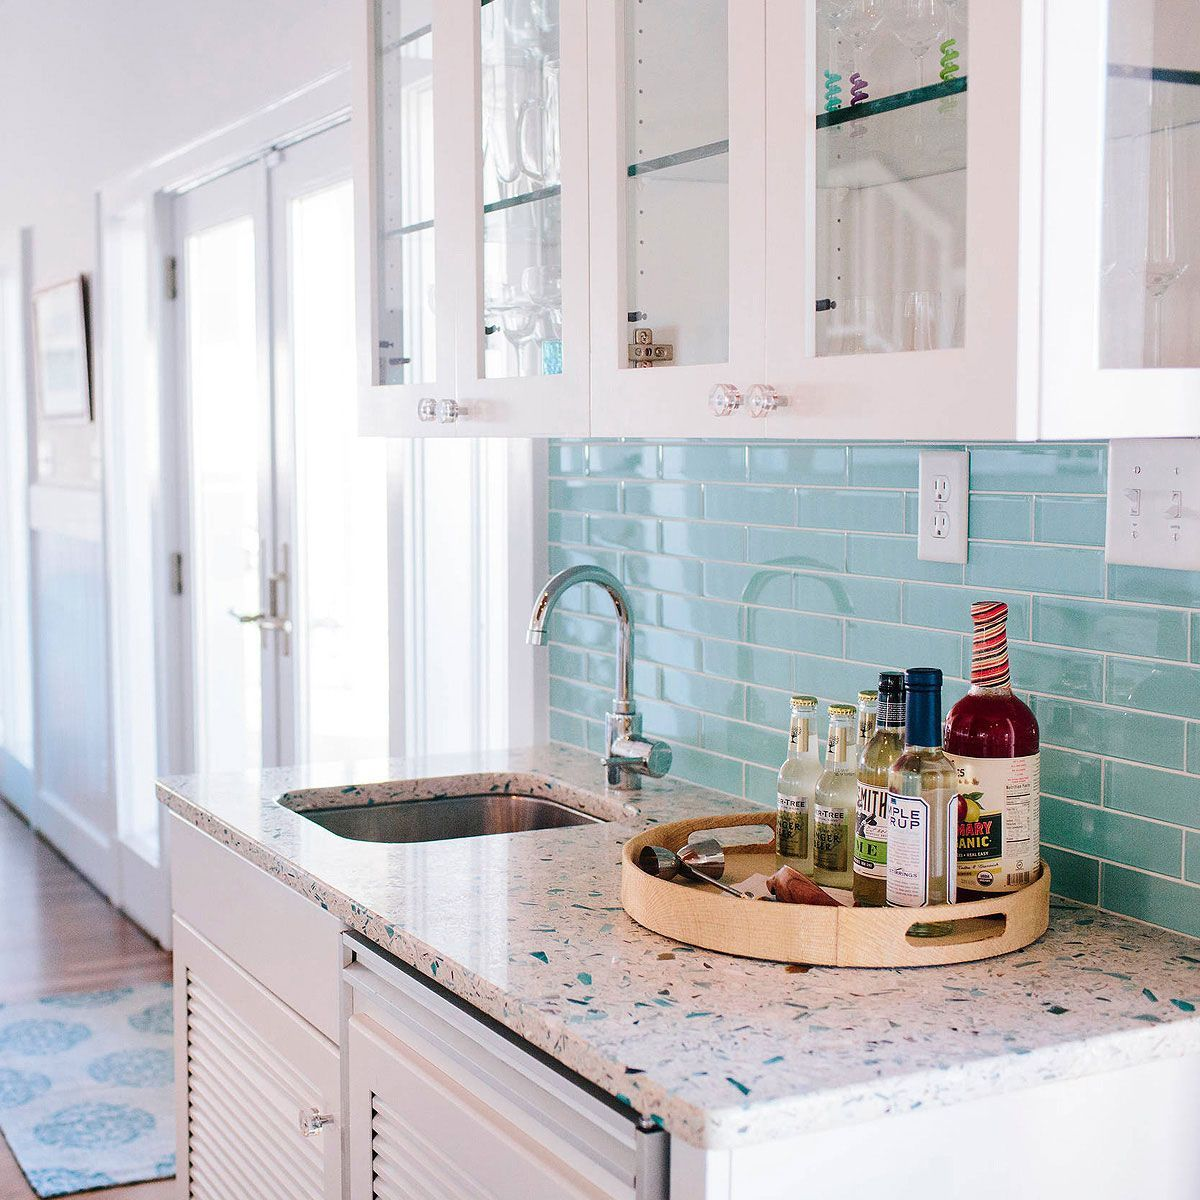 Pin On Recycled Glass Countertop Ideas